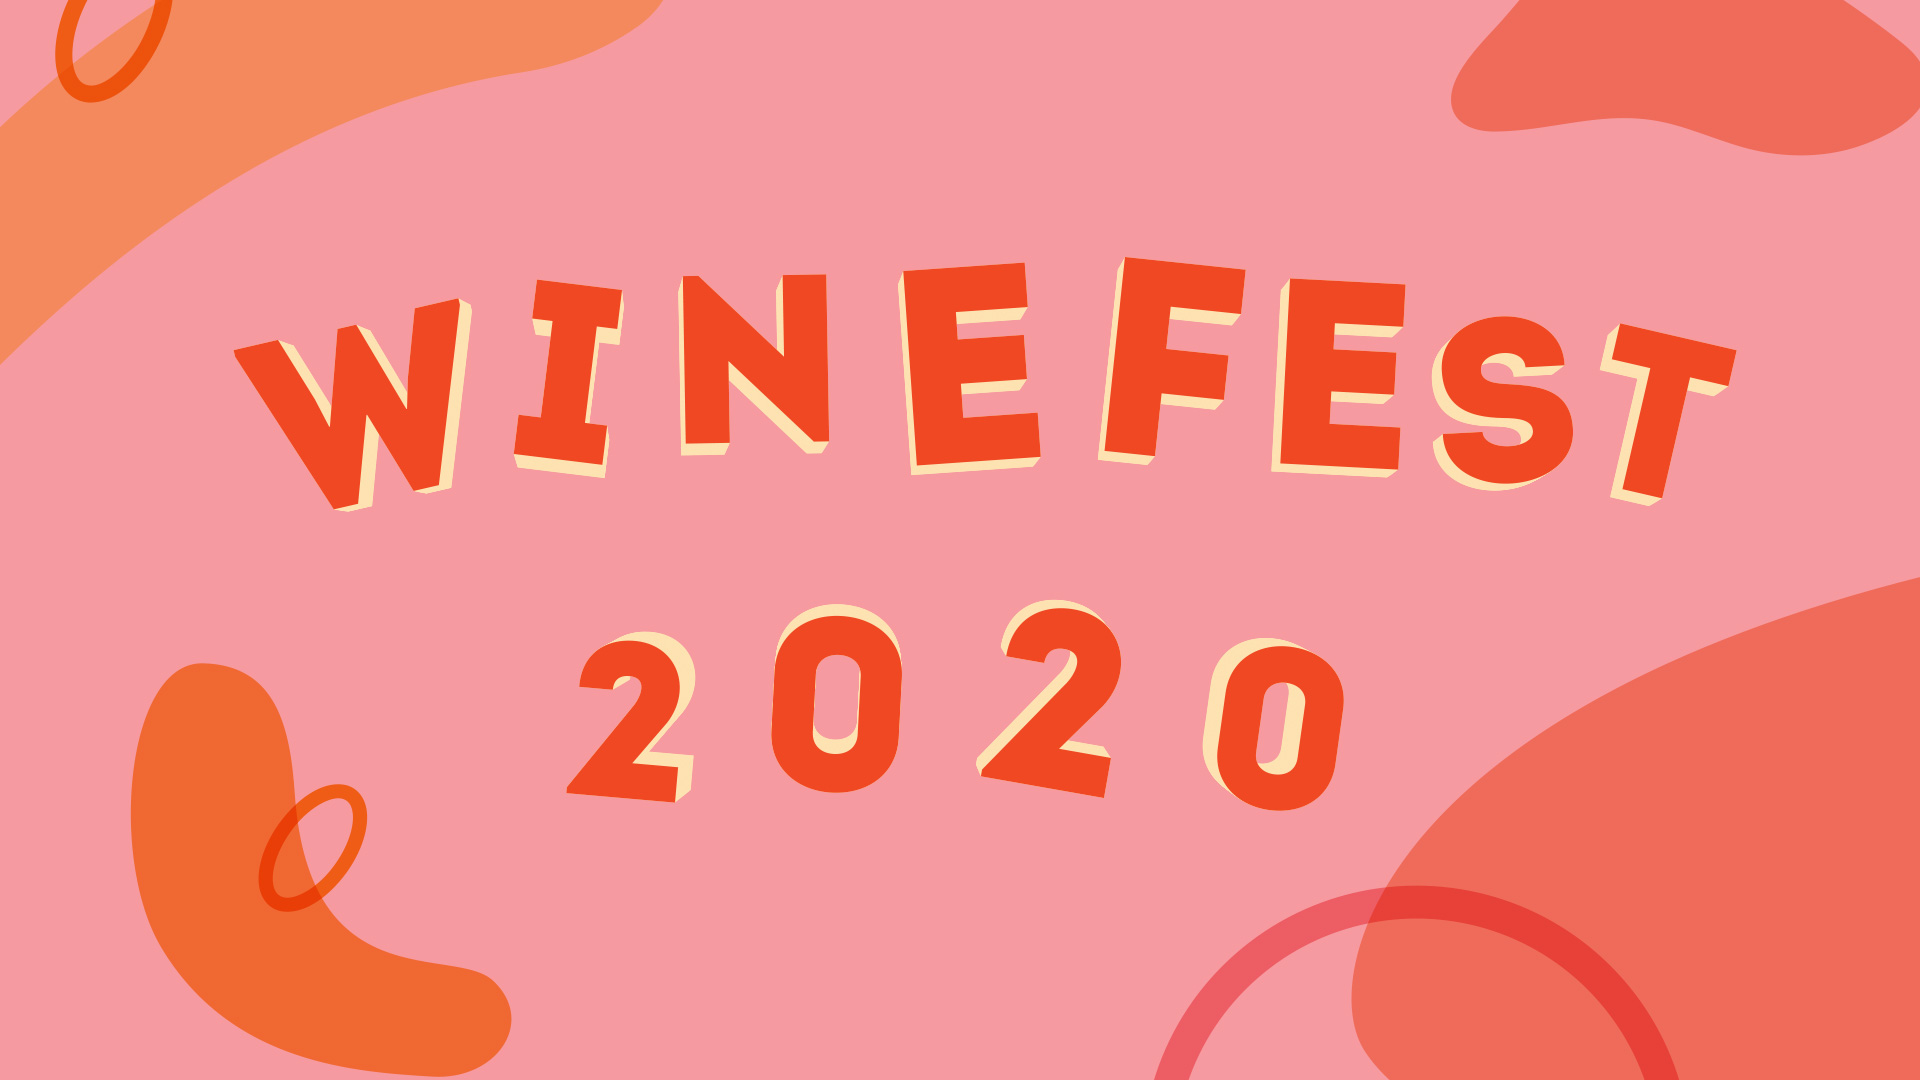 """Image 1/6: Illustrations in a pink, orange, and yellow color scheme with the words """"Winefest 2020"""""""